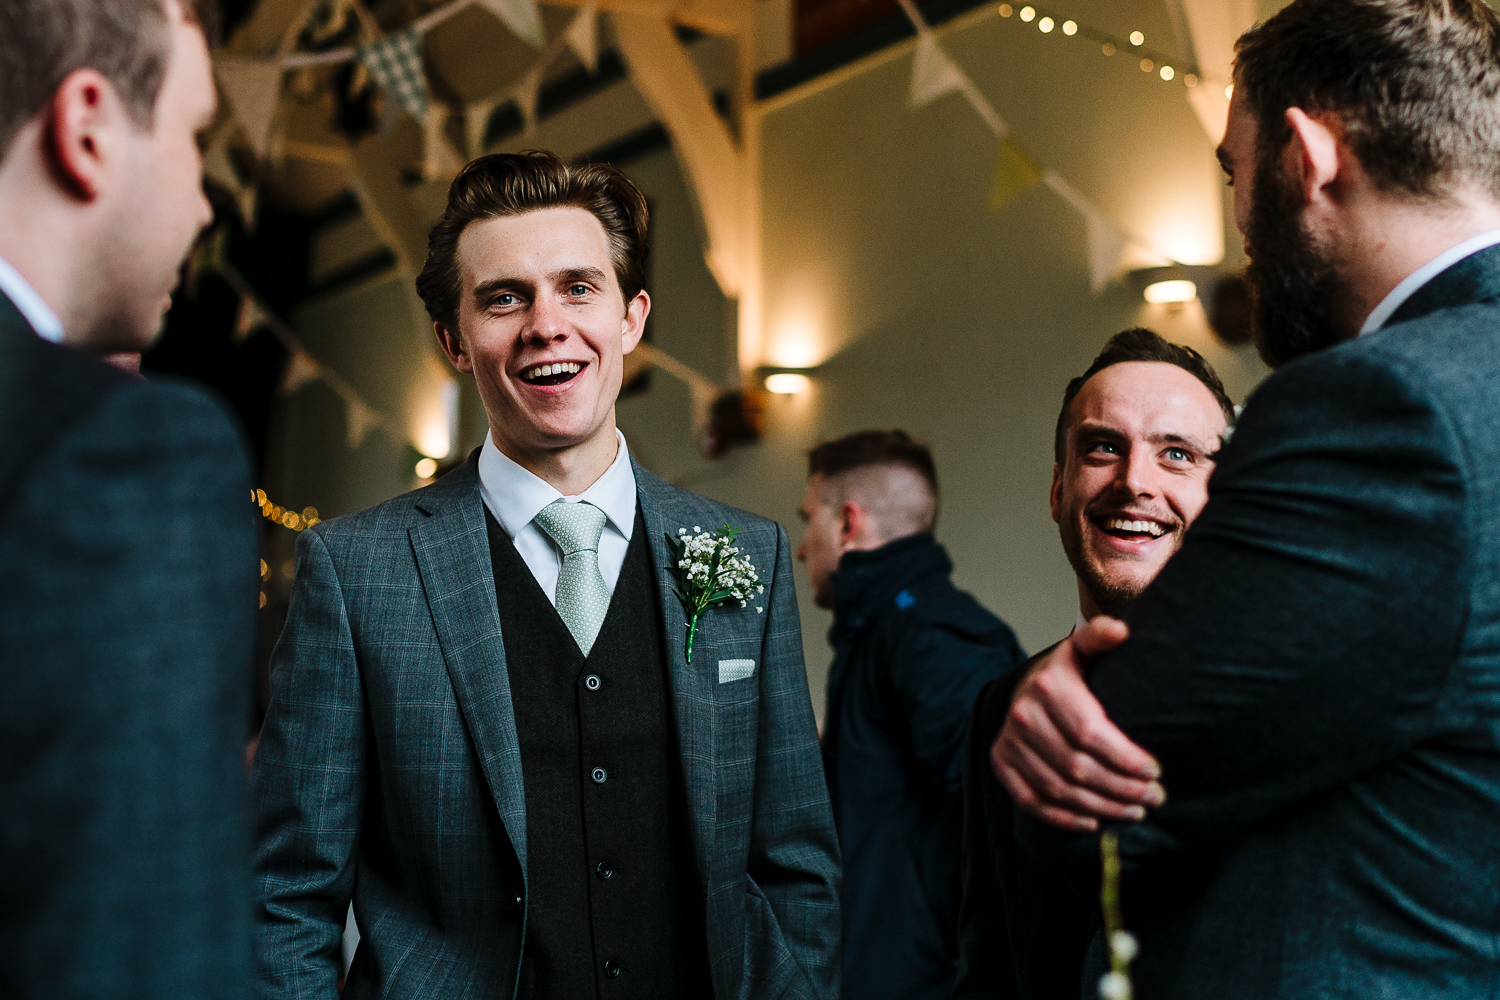 Groomsmen laughing before the ceremony